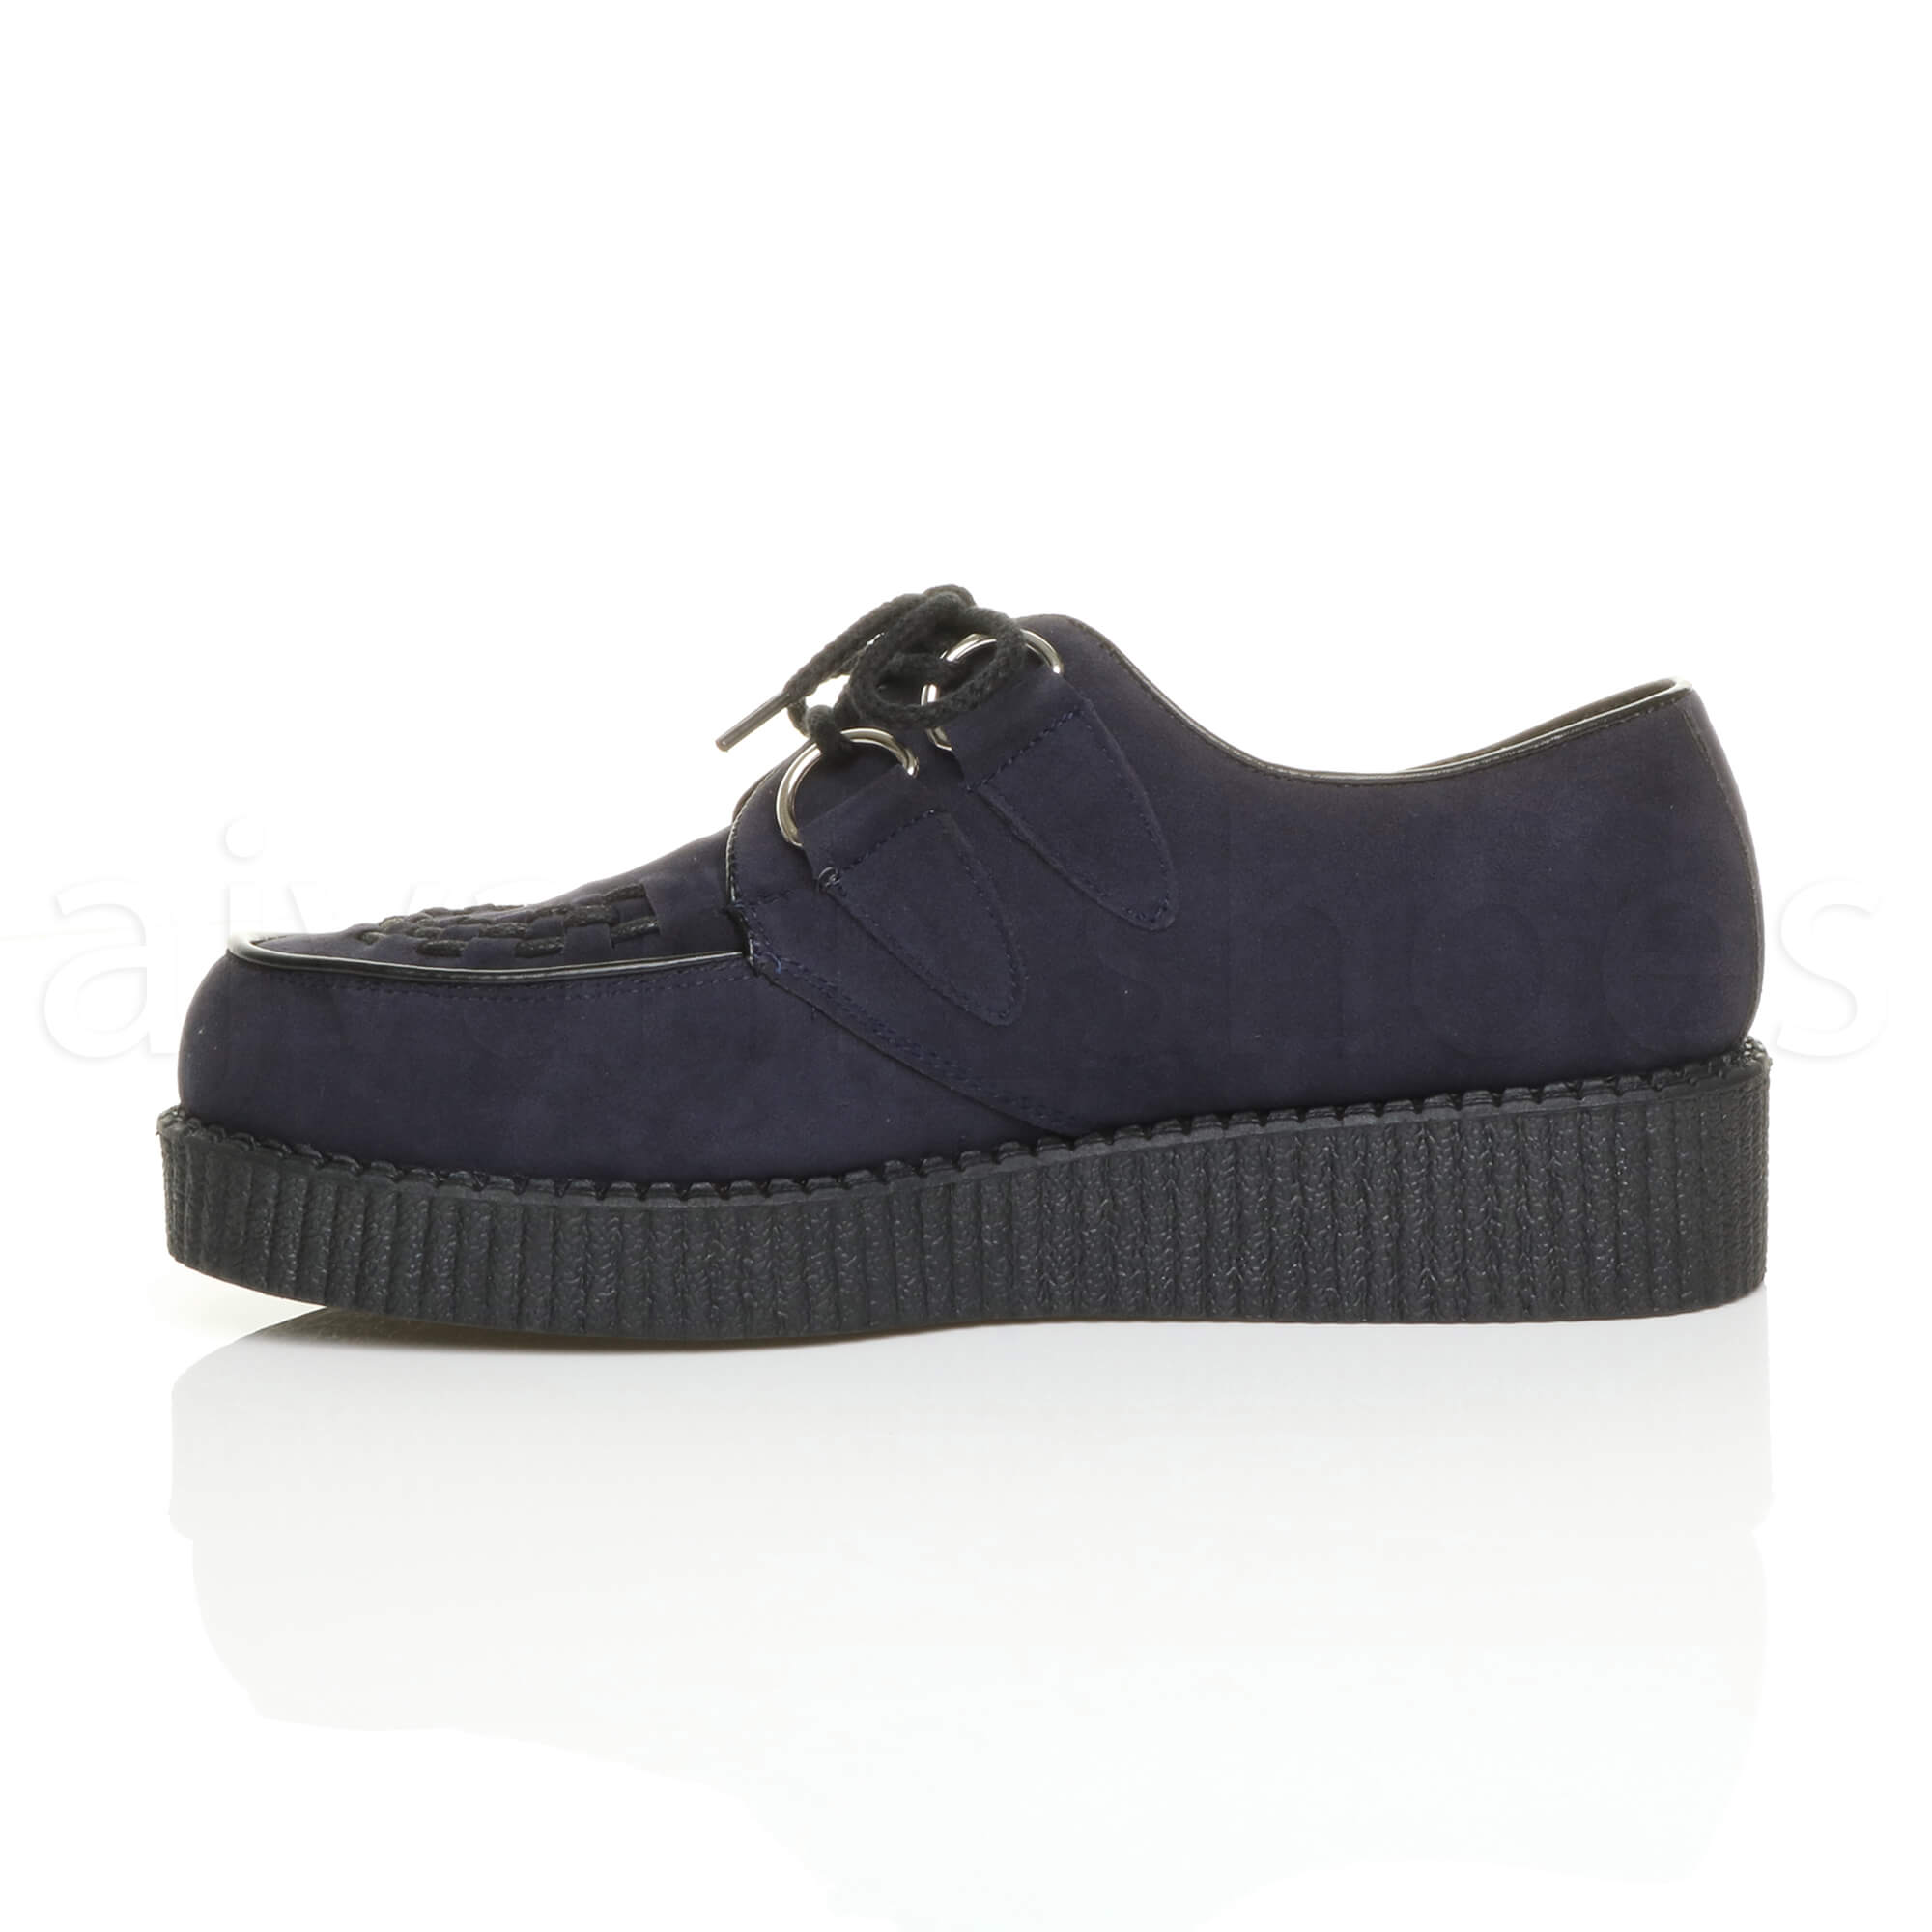 MENS-PLATFORM-WEDGE-LACE-UP-GOTH-PUNK-BROTHEL-CREEPERS-BEETLE-CRUSHERS-SHOES thumbnail 39